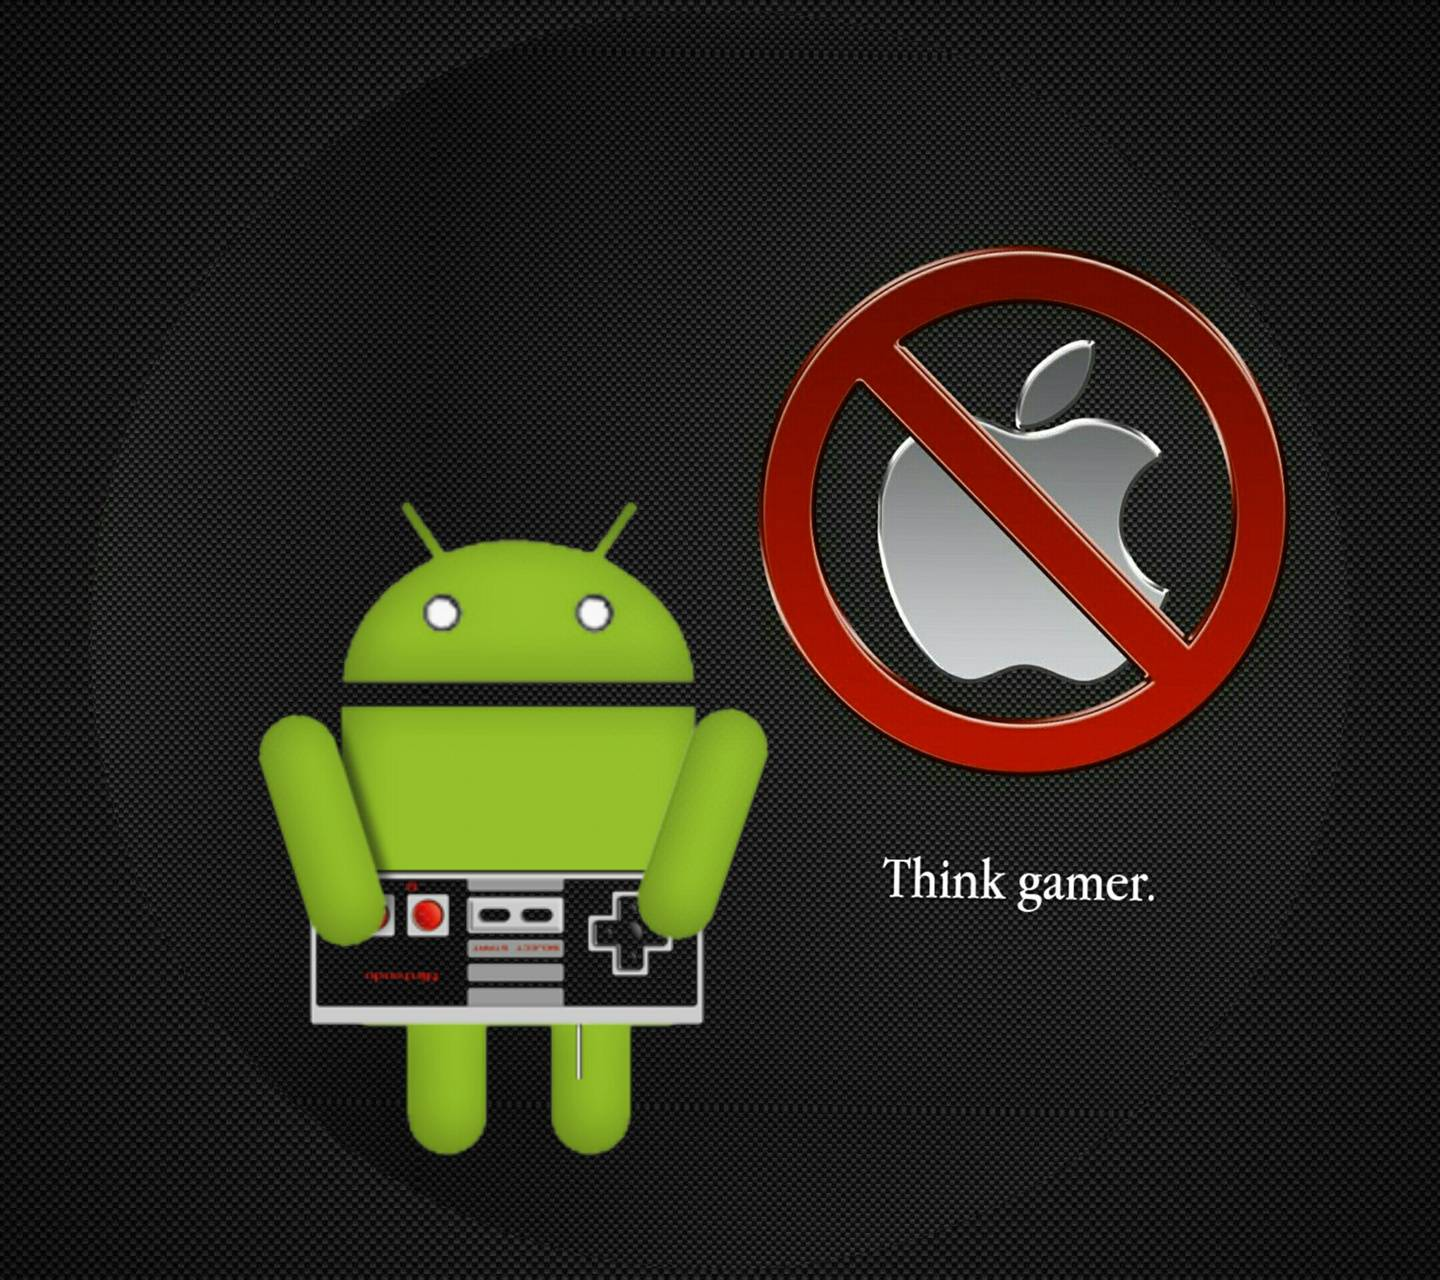 Android Gamer Wallpaper By MrMister85 04 Free On ZEDGE™